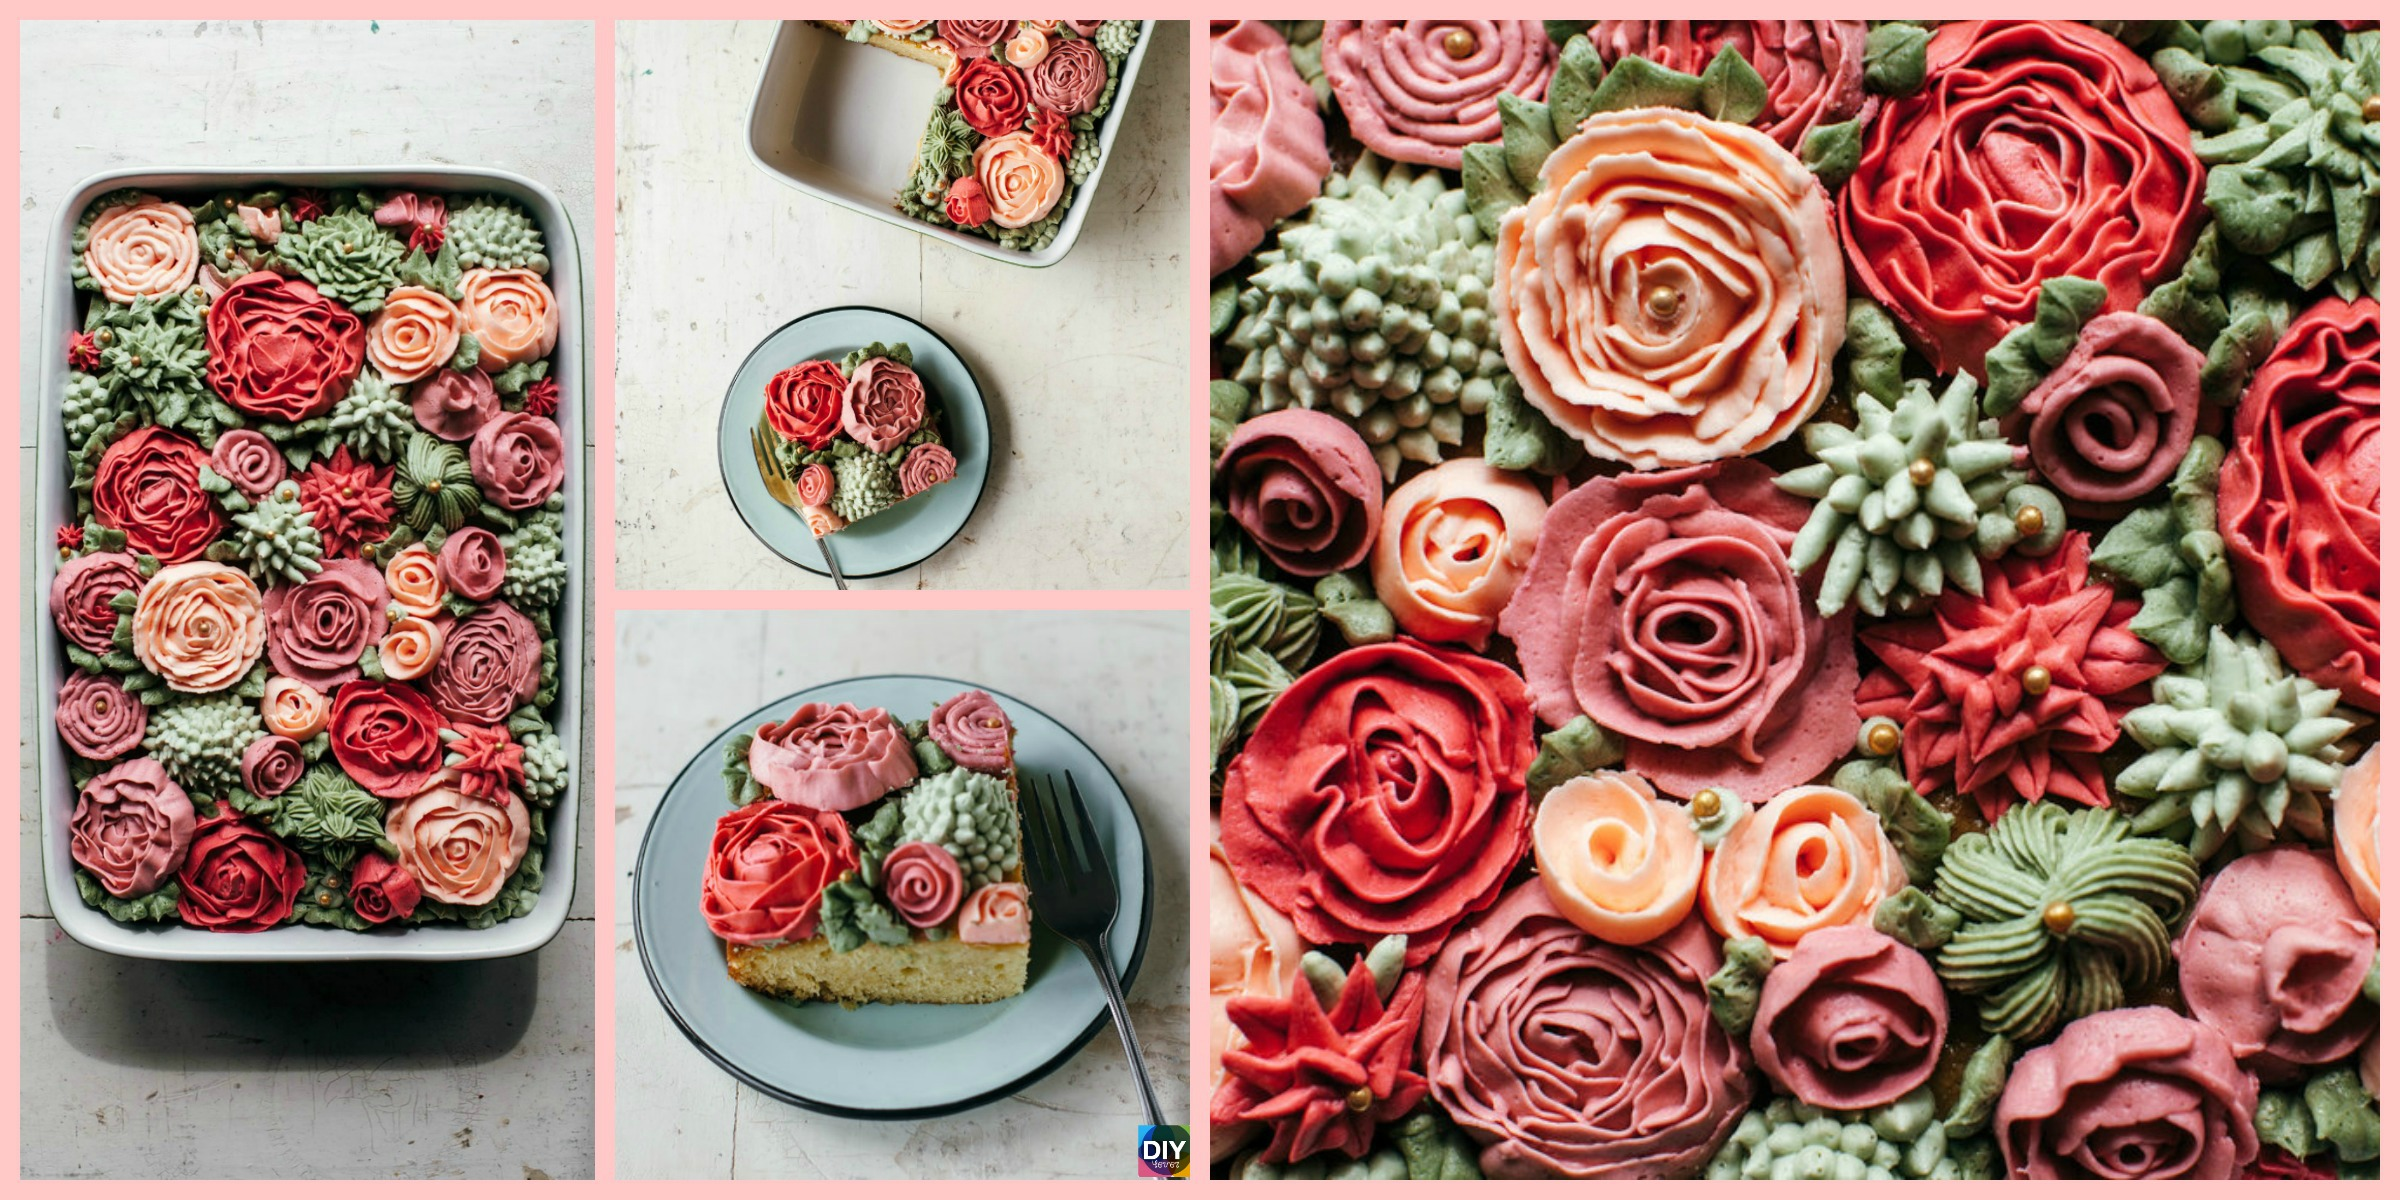 Amazing DIY Rose Cake – Step by Step Tutorial